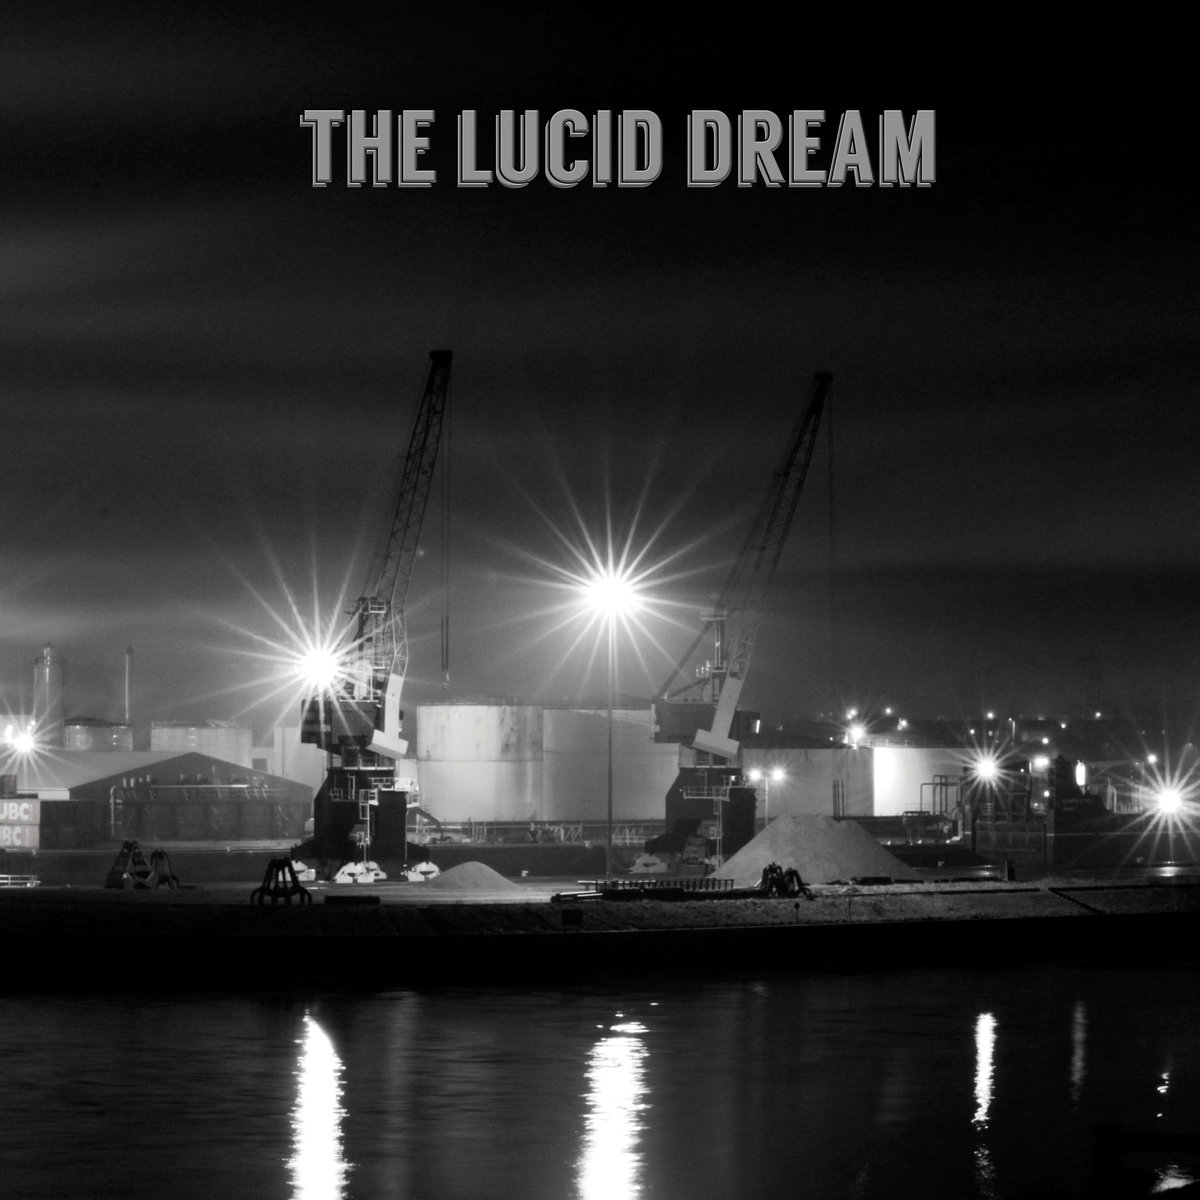 Compulsion songs - THE LUCID DREAM